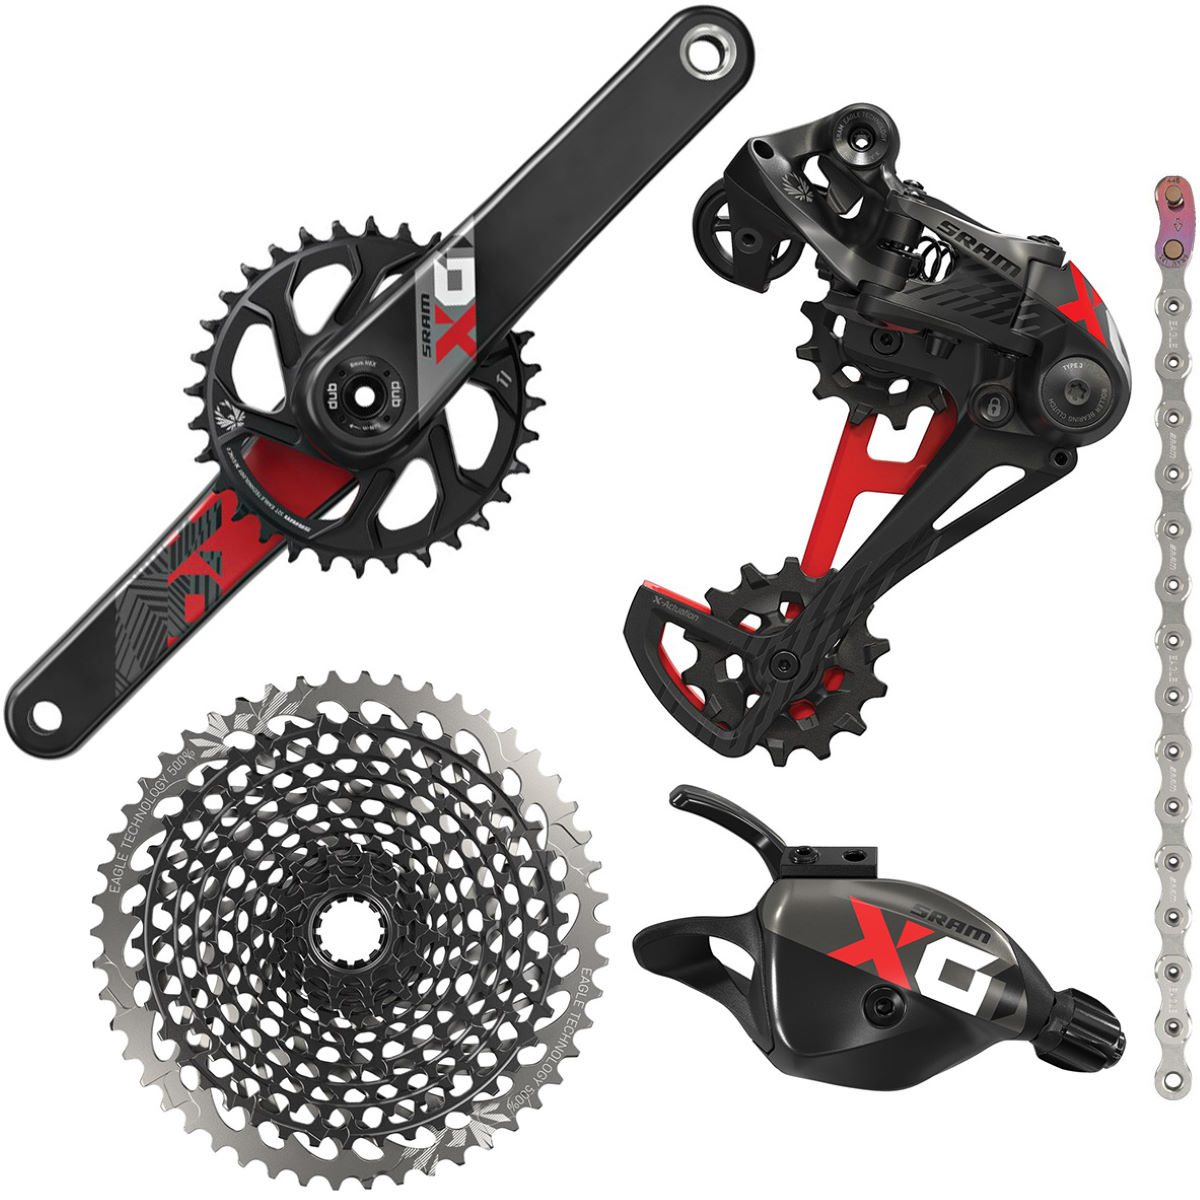 SRAM X01 12sp Eagle DUB BOOST Groupset   Groupsets